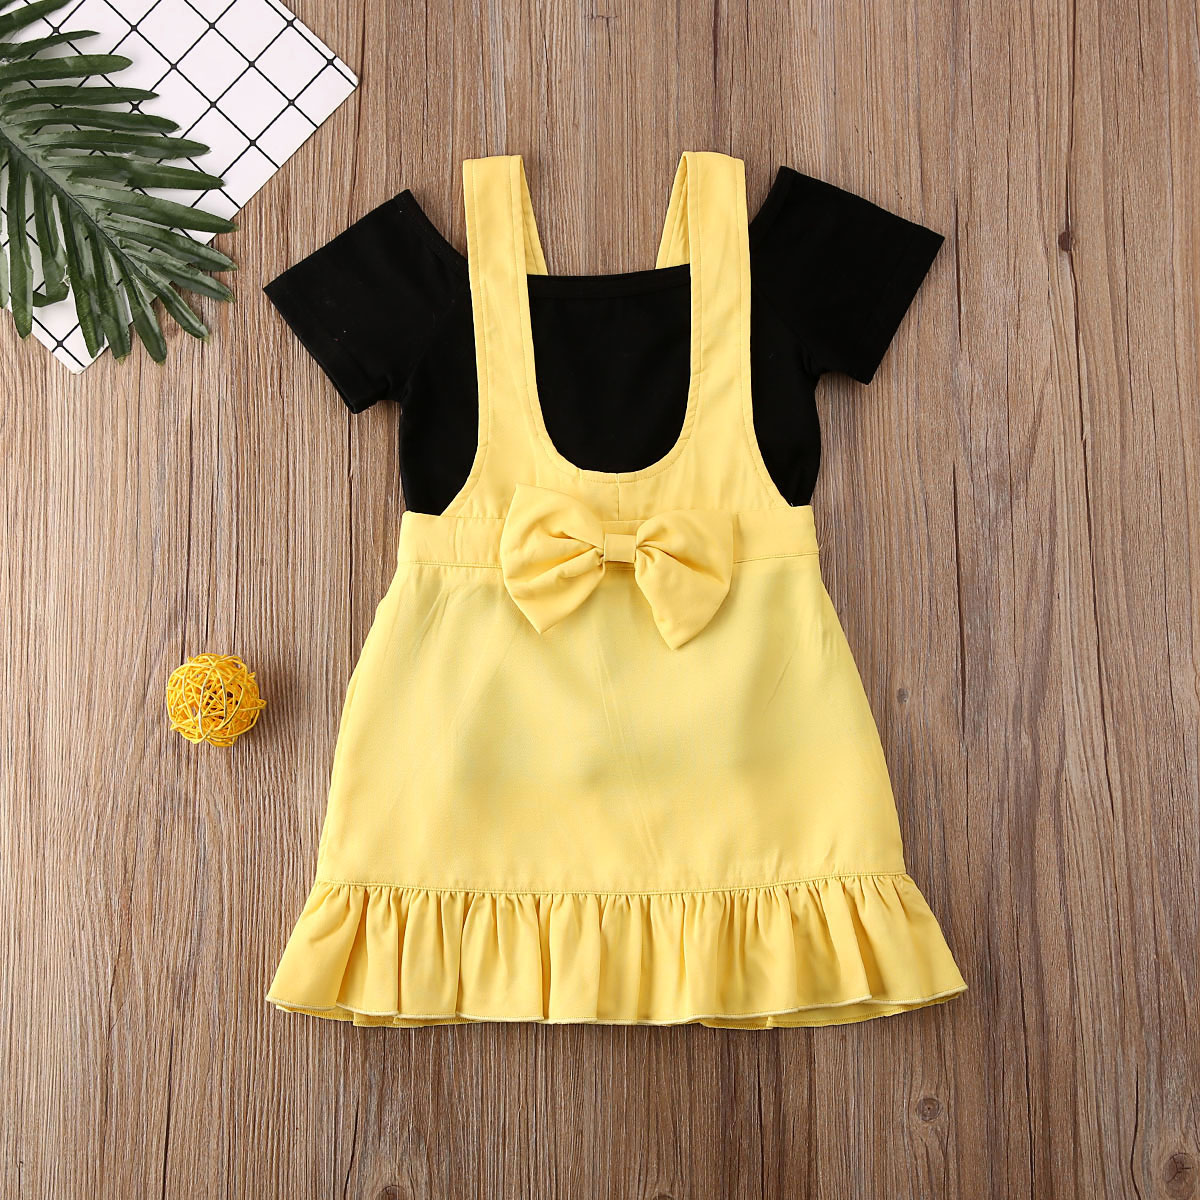 Pudcoco Toddler Baby Girl Clothes Solid Color Off Shoulder Short Sleeve Tops Strap Bowknot Dress 2Pcs Outfits Casual Clothes